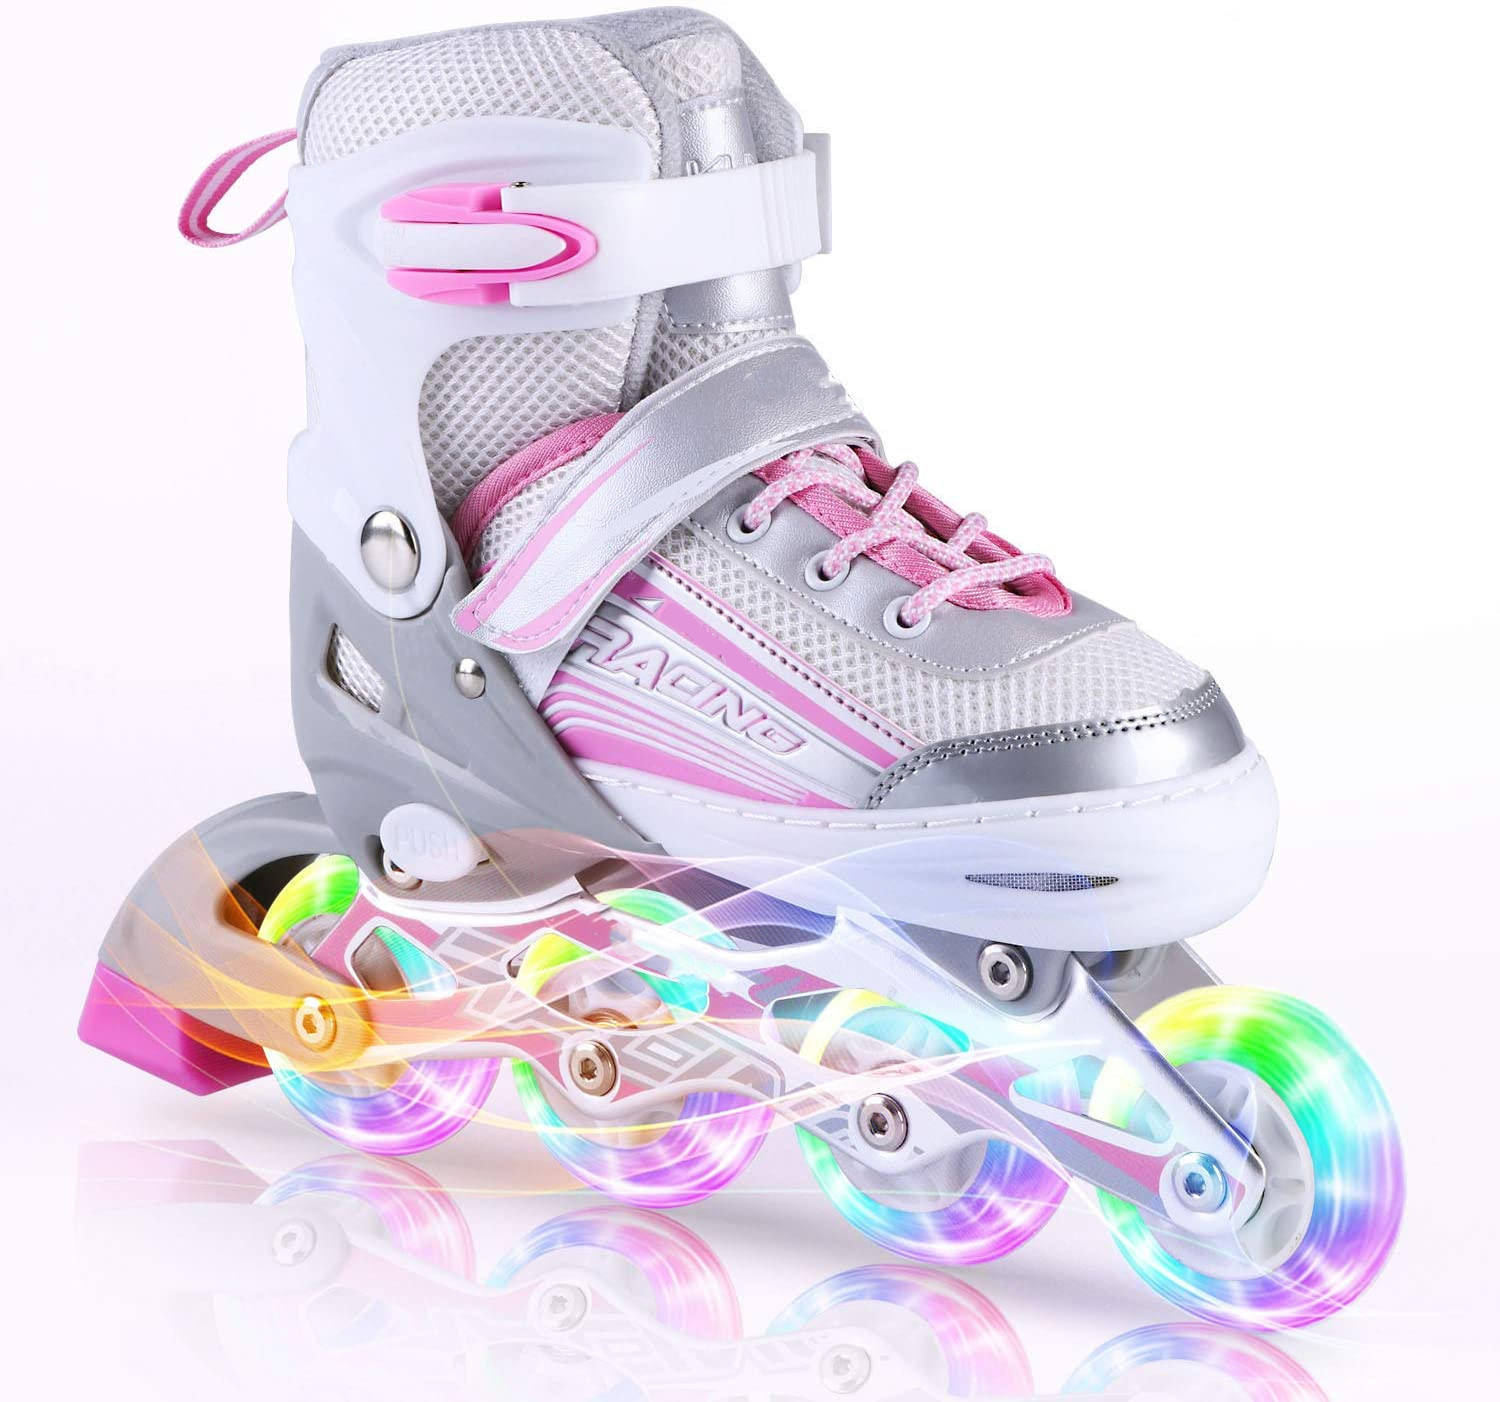 Adjustable for Kids Girls Inline Skates with All Wheels Light up